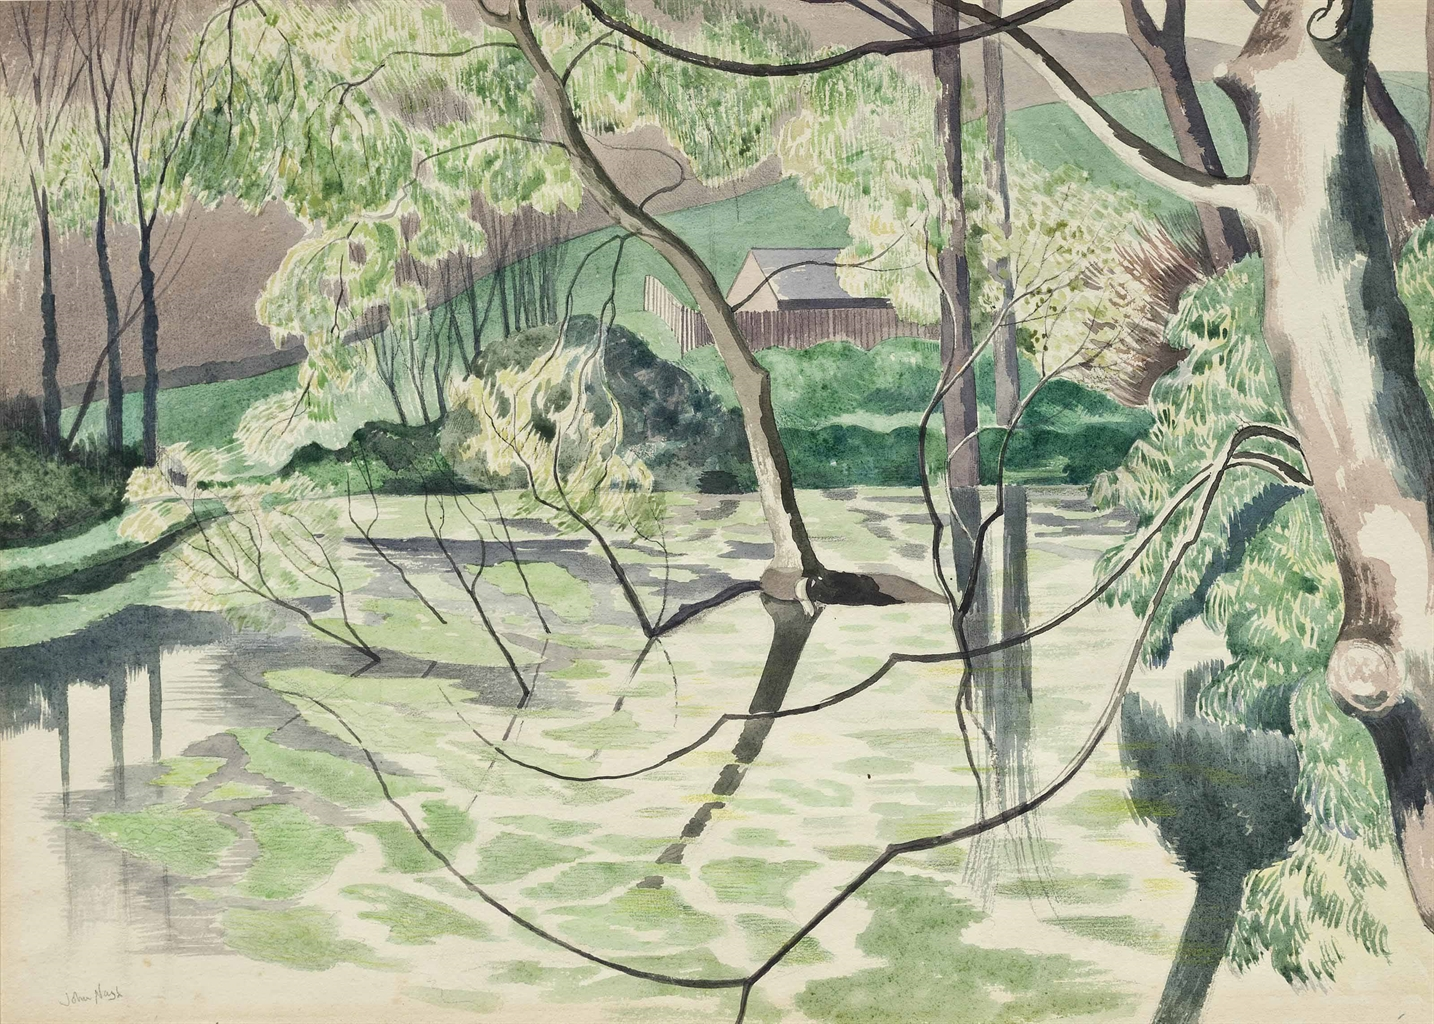 John Nash-Weeping willows in a pond-